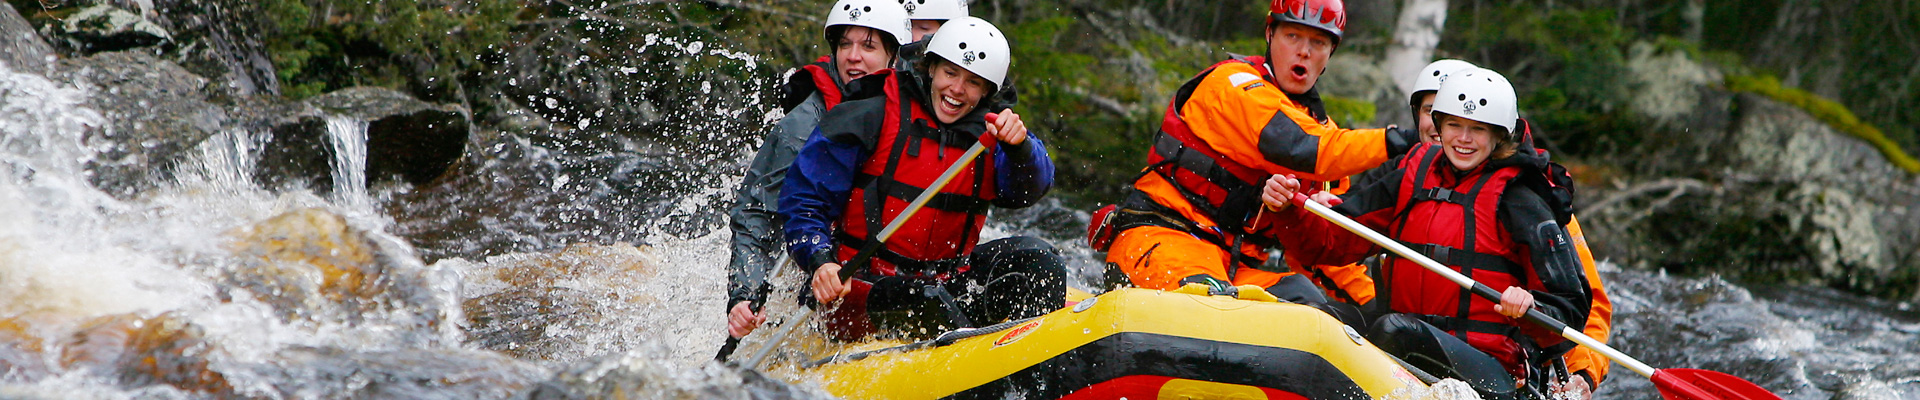 Rafting in Swedish Lapland